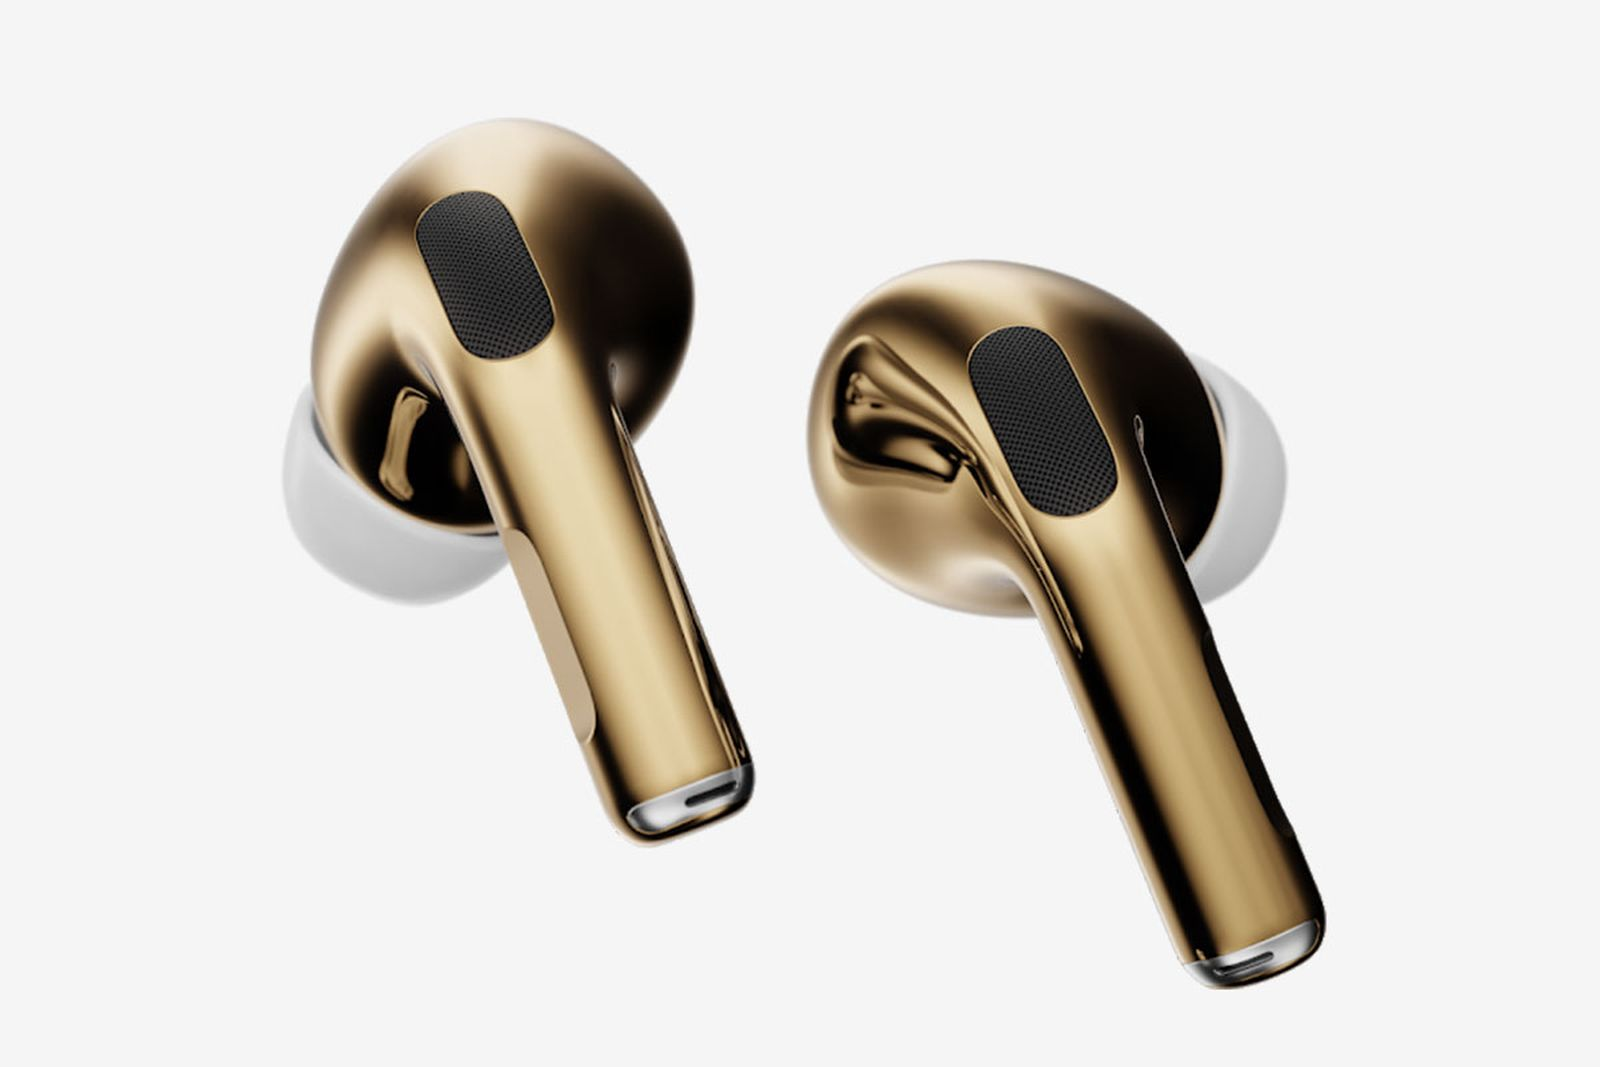 caviar-airpods-pro-gold-edition-07